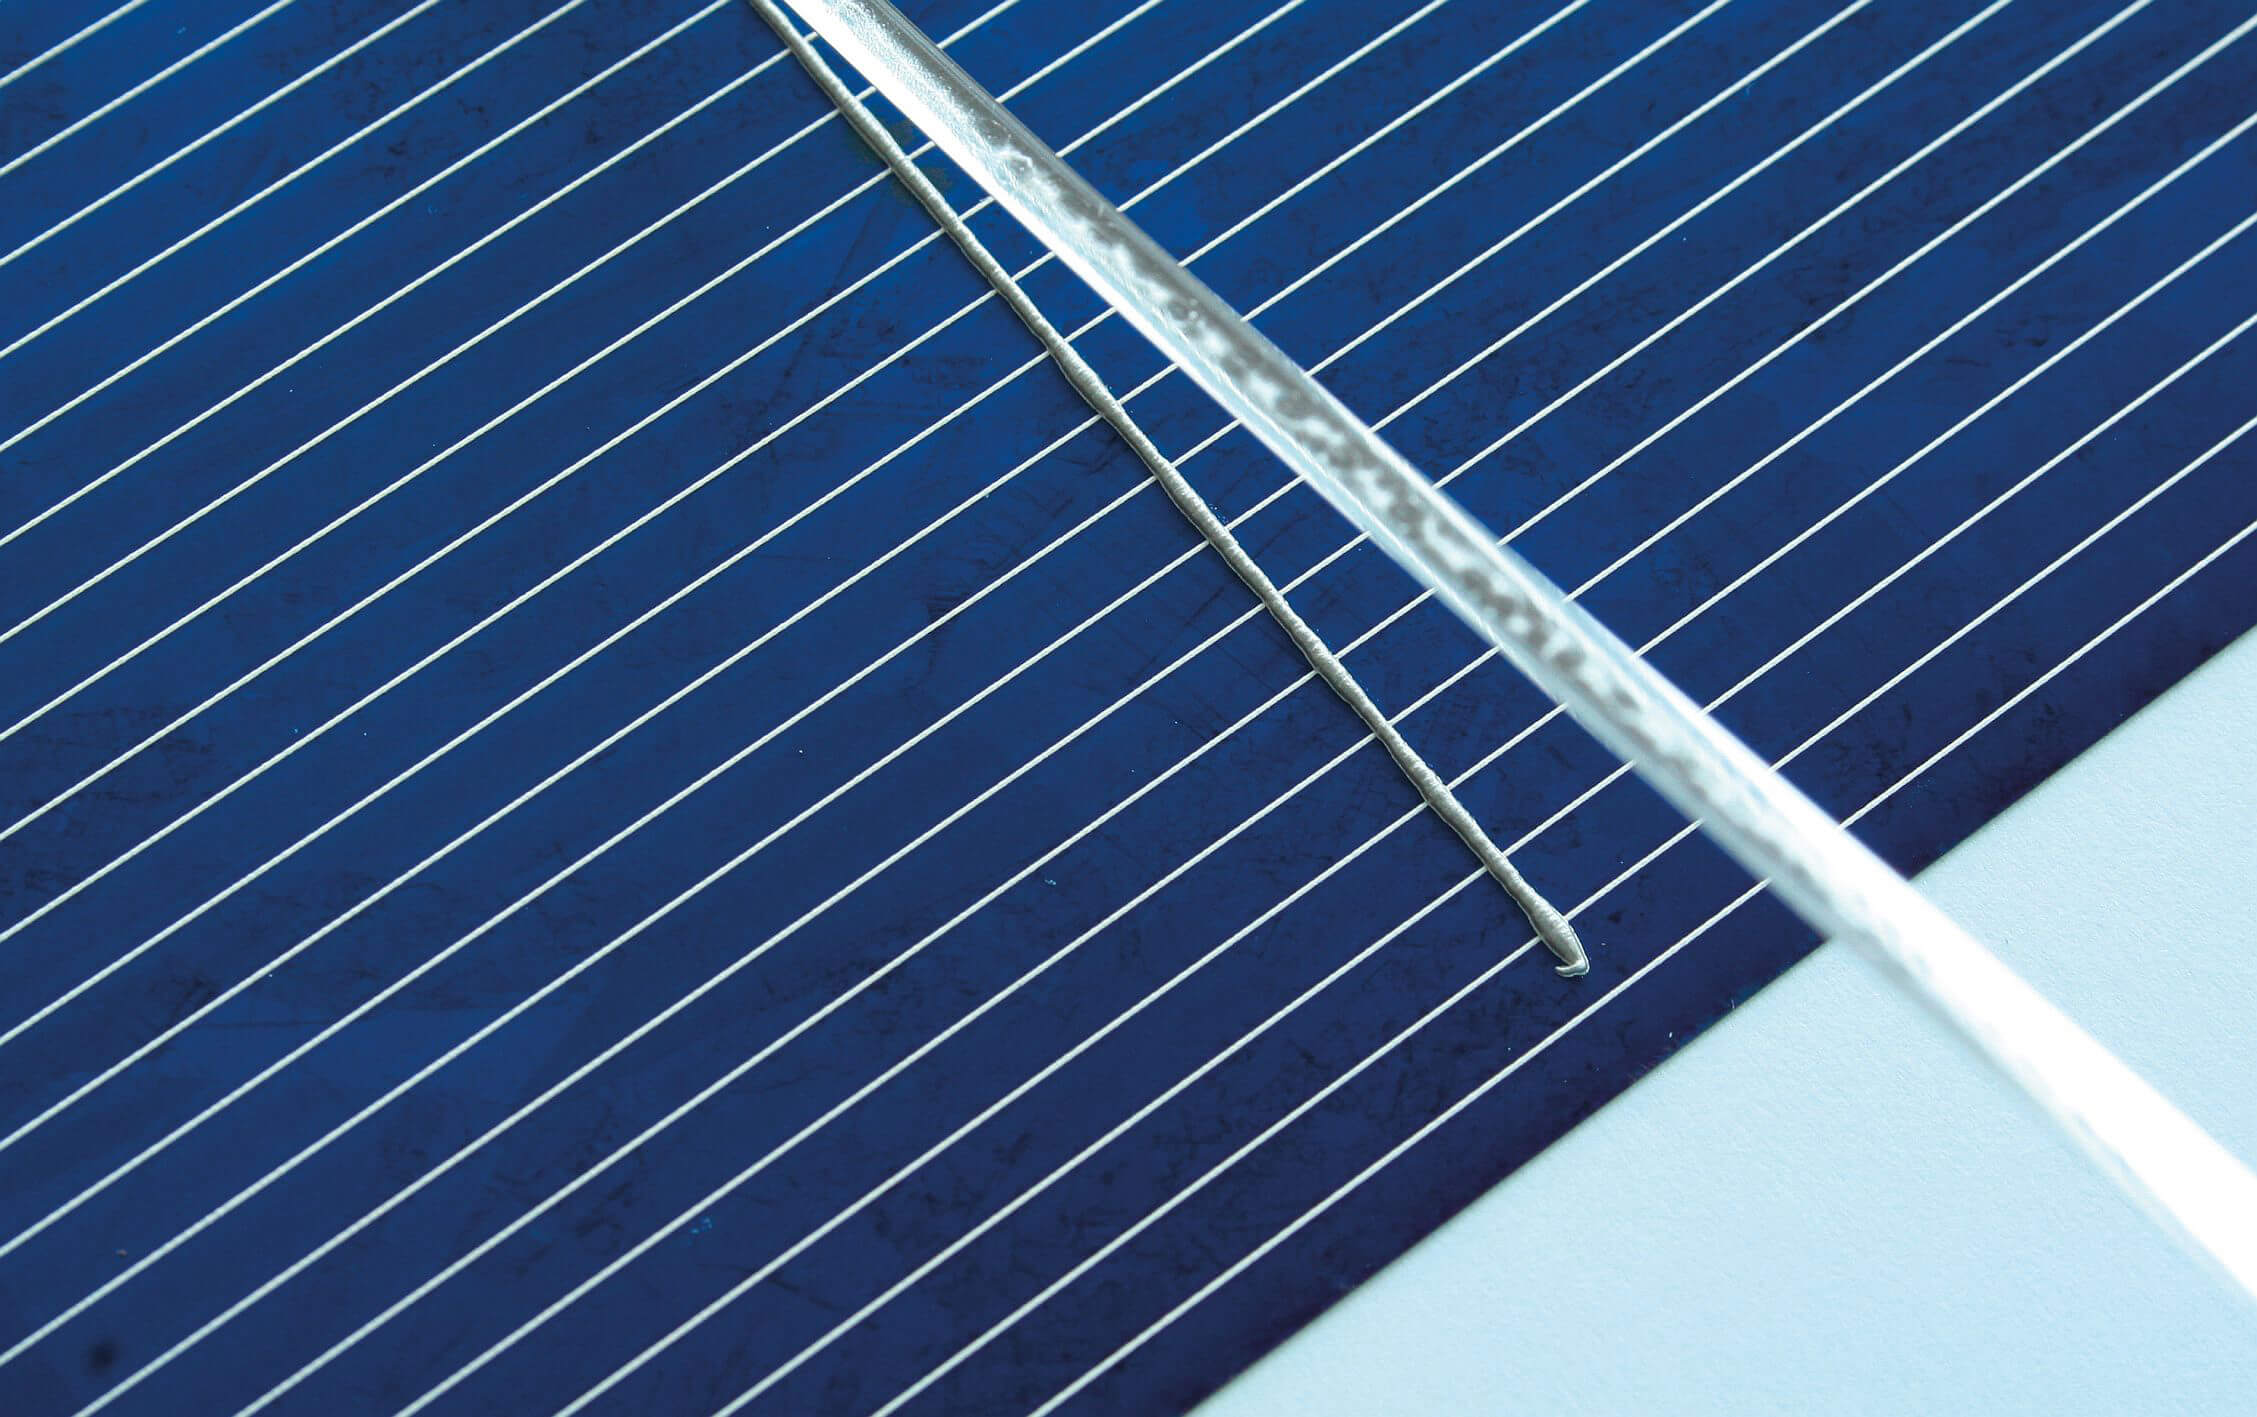 Fraunhofer Ise And Teamtechnik Demonstrate Industrial Maturity Of Electrical Technology Series Connection Solar Panel Parallel Photo Cell With Conductive Adhesive Interconnection 128 Mb